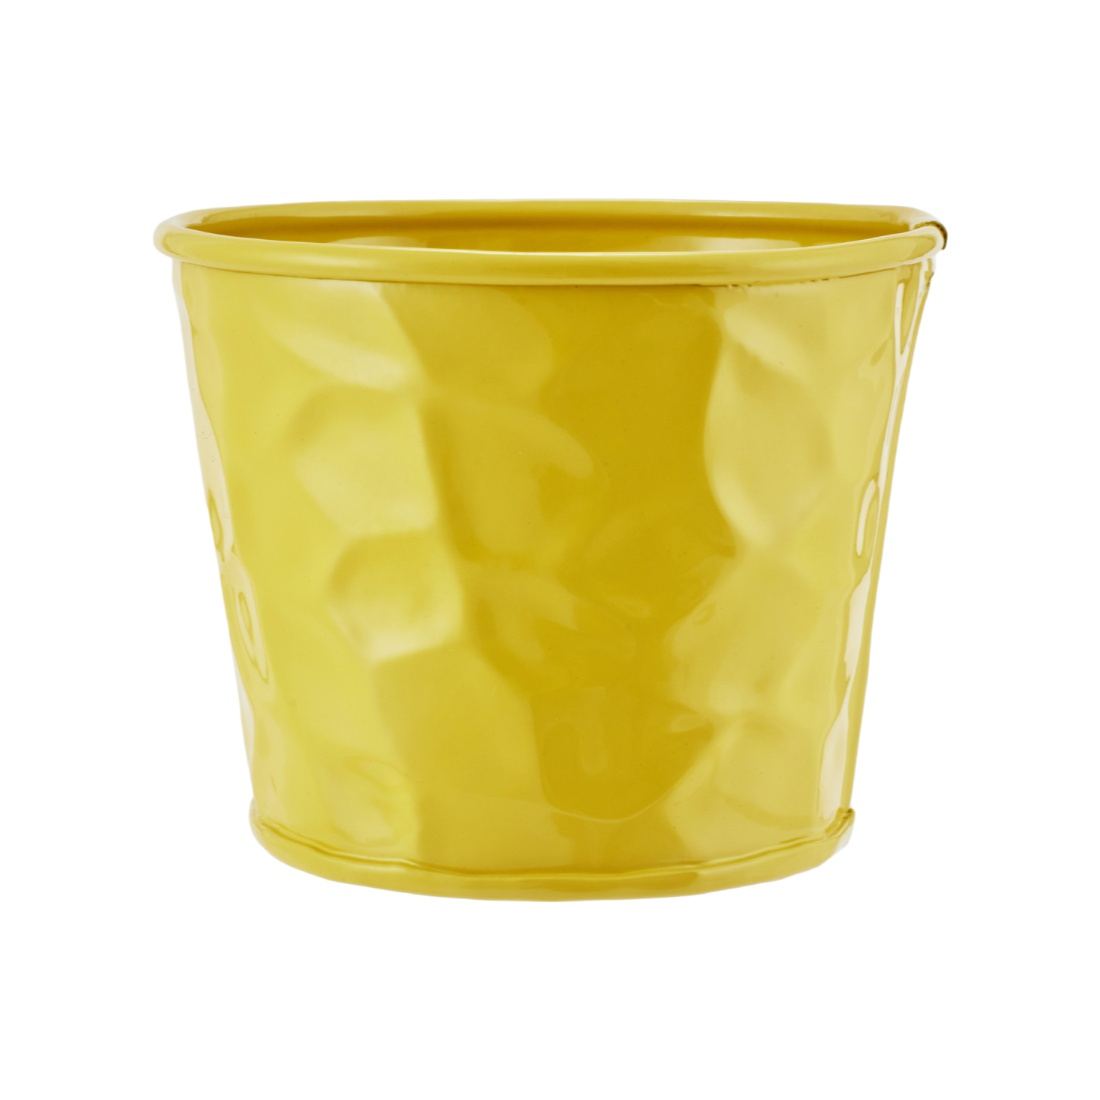 Aria Round Planter With Texture Yellow Metal Pots & Planters in Yellow Colour by Living Essence